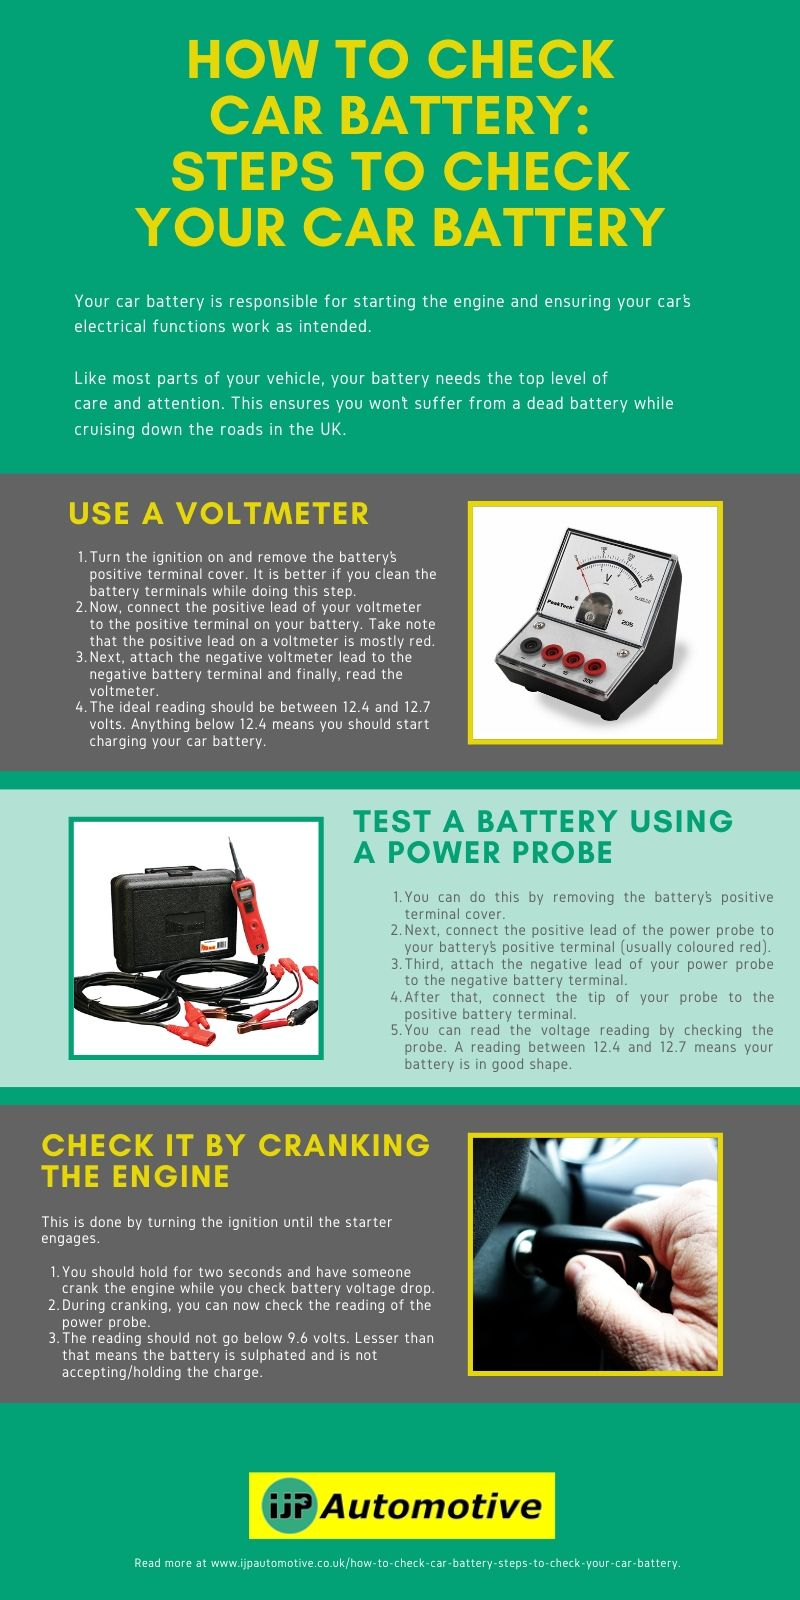 How to Check Car Battery_ Steps to Check Your Car Battery_IJP Automotive